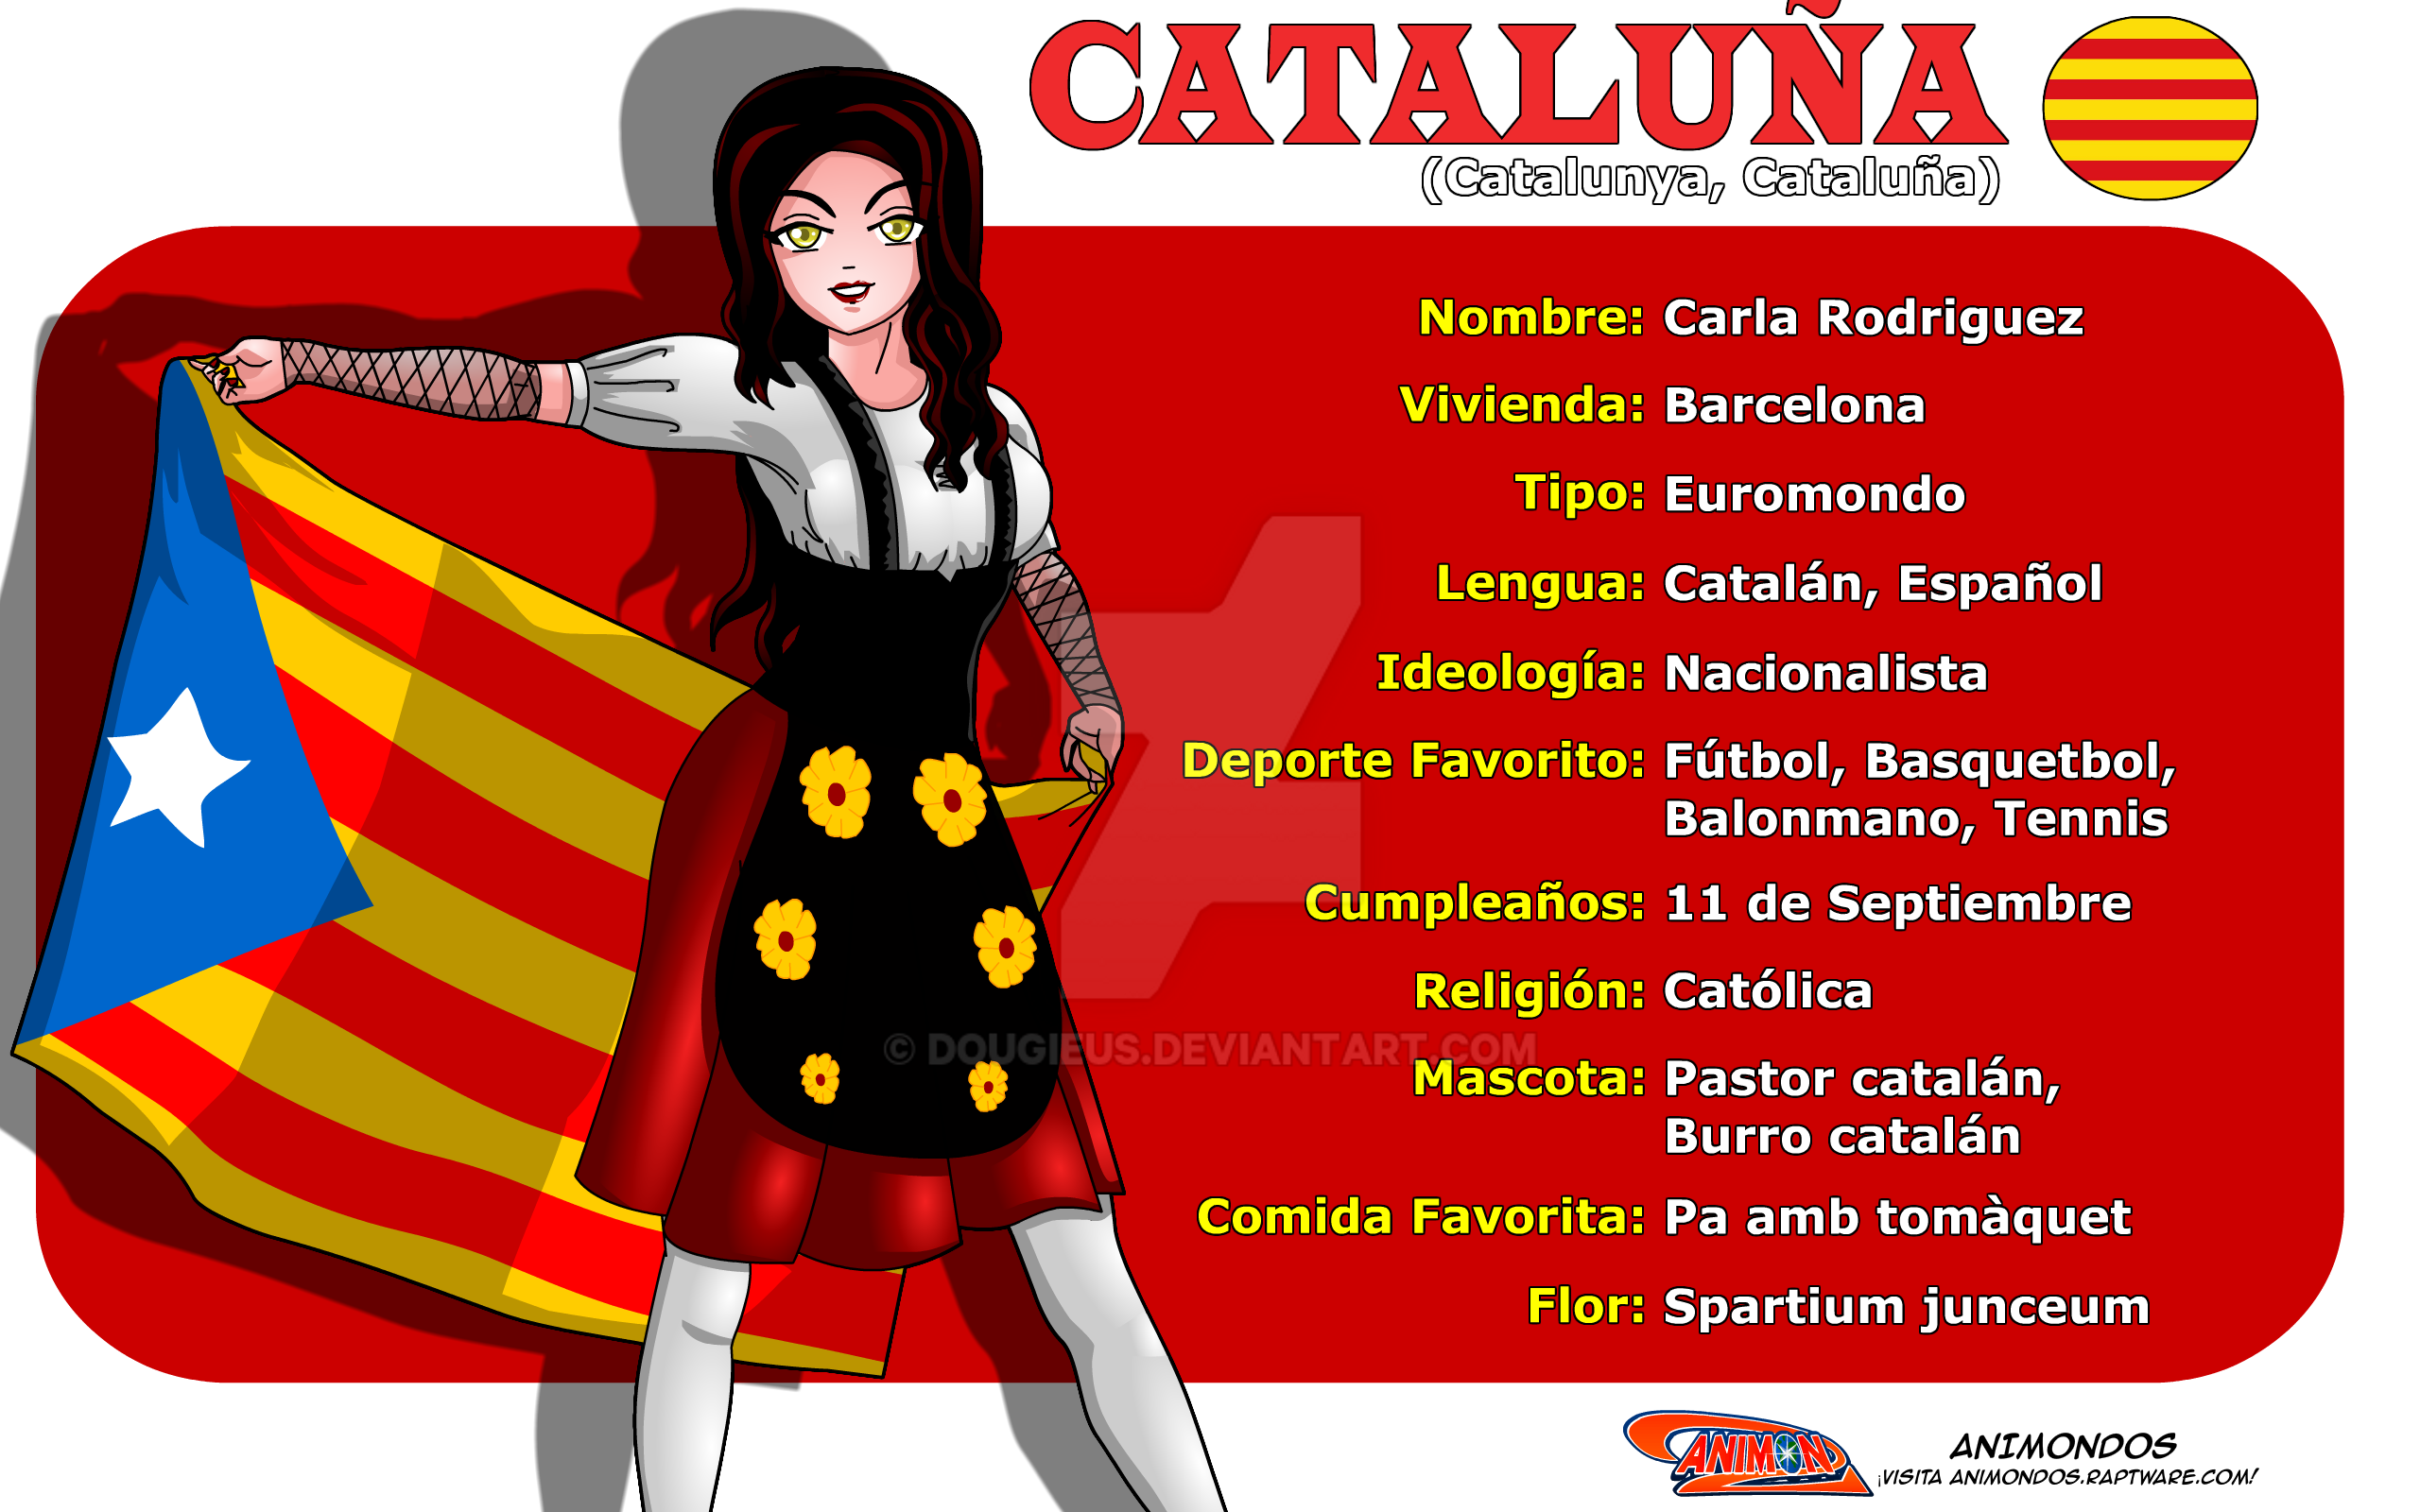 Perfil de Catalonia de Animondos by Dougieus